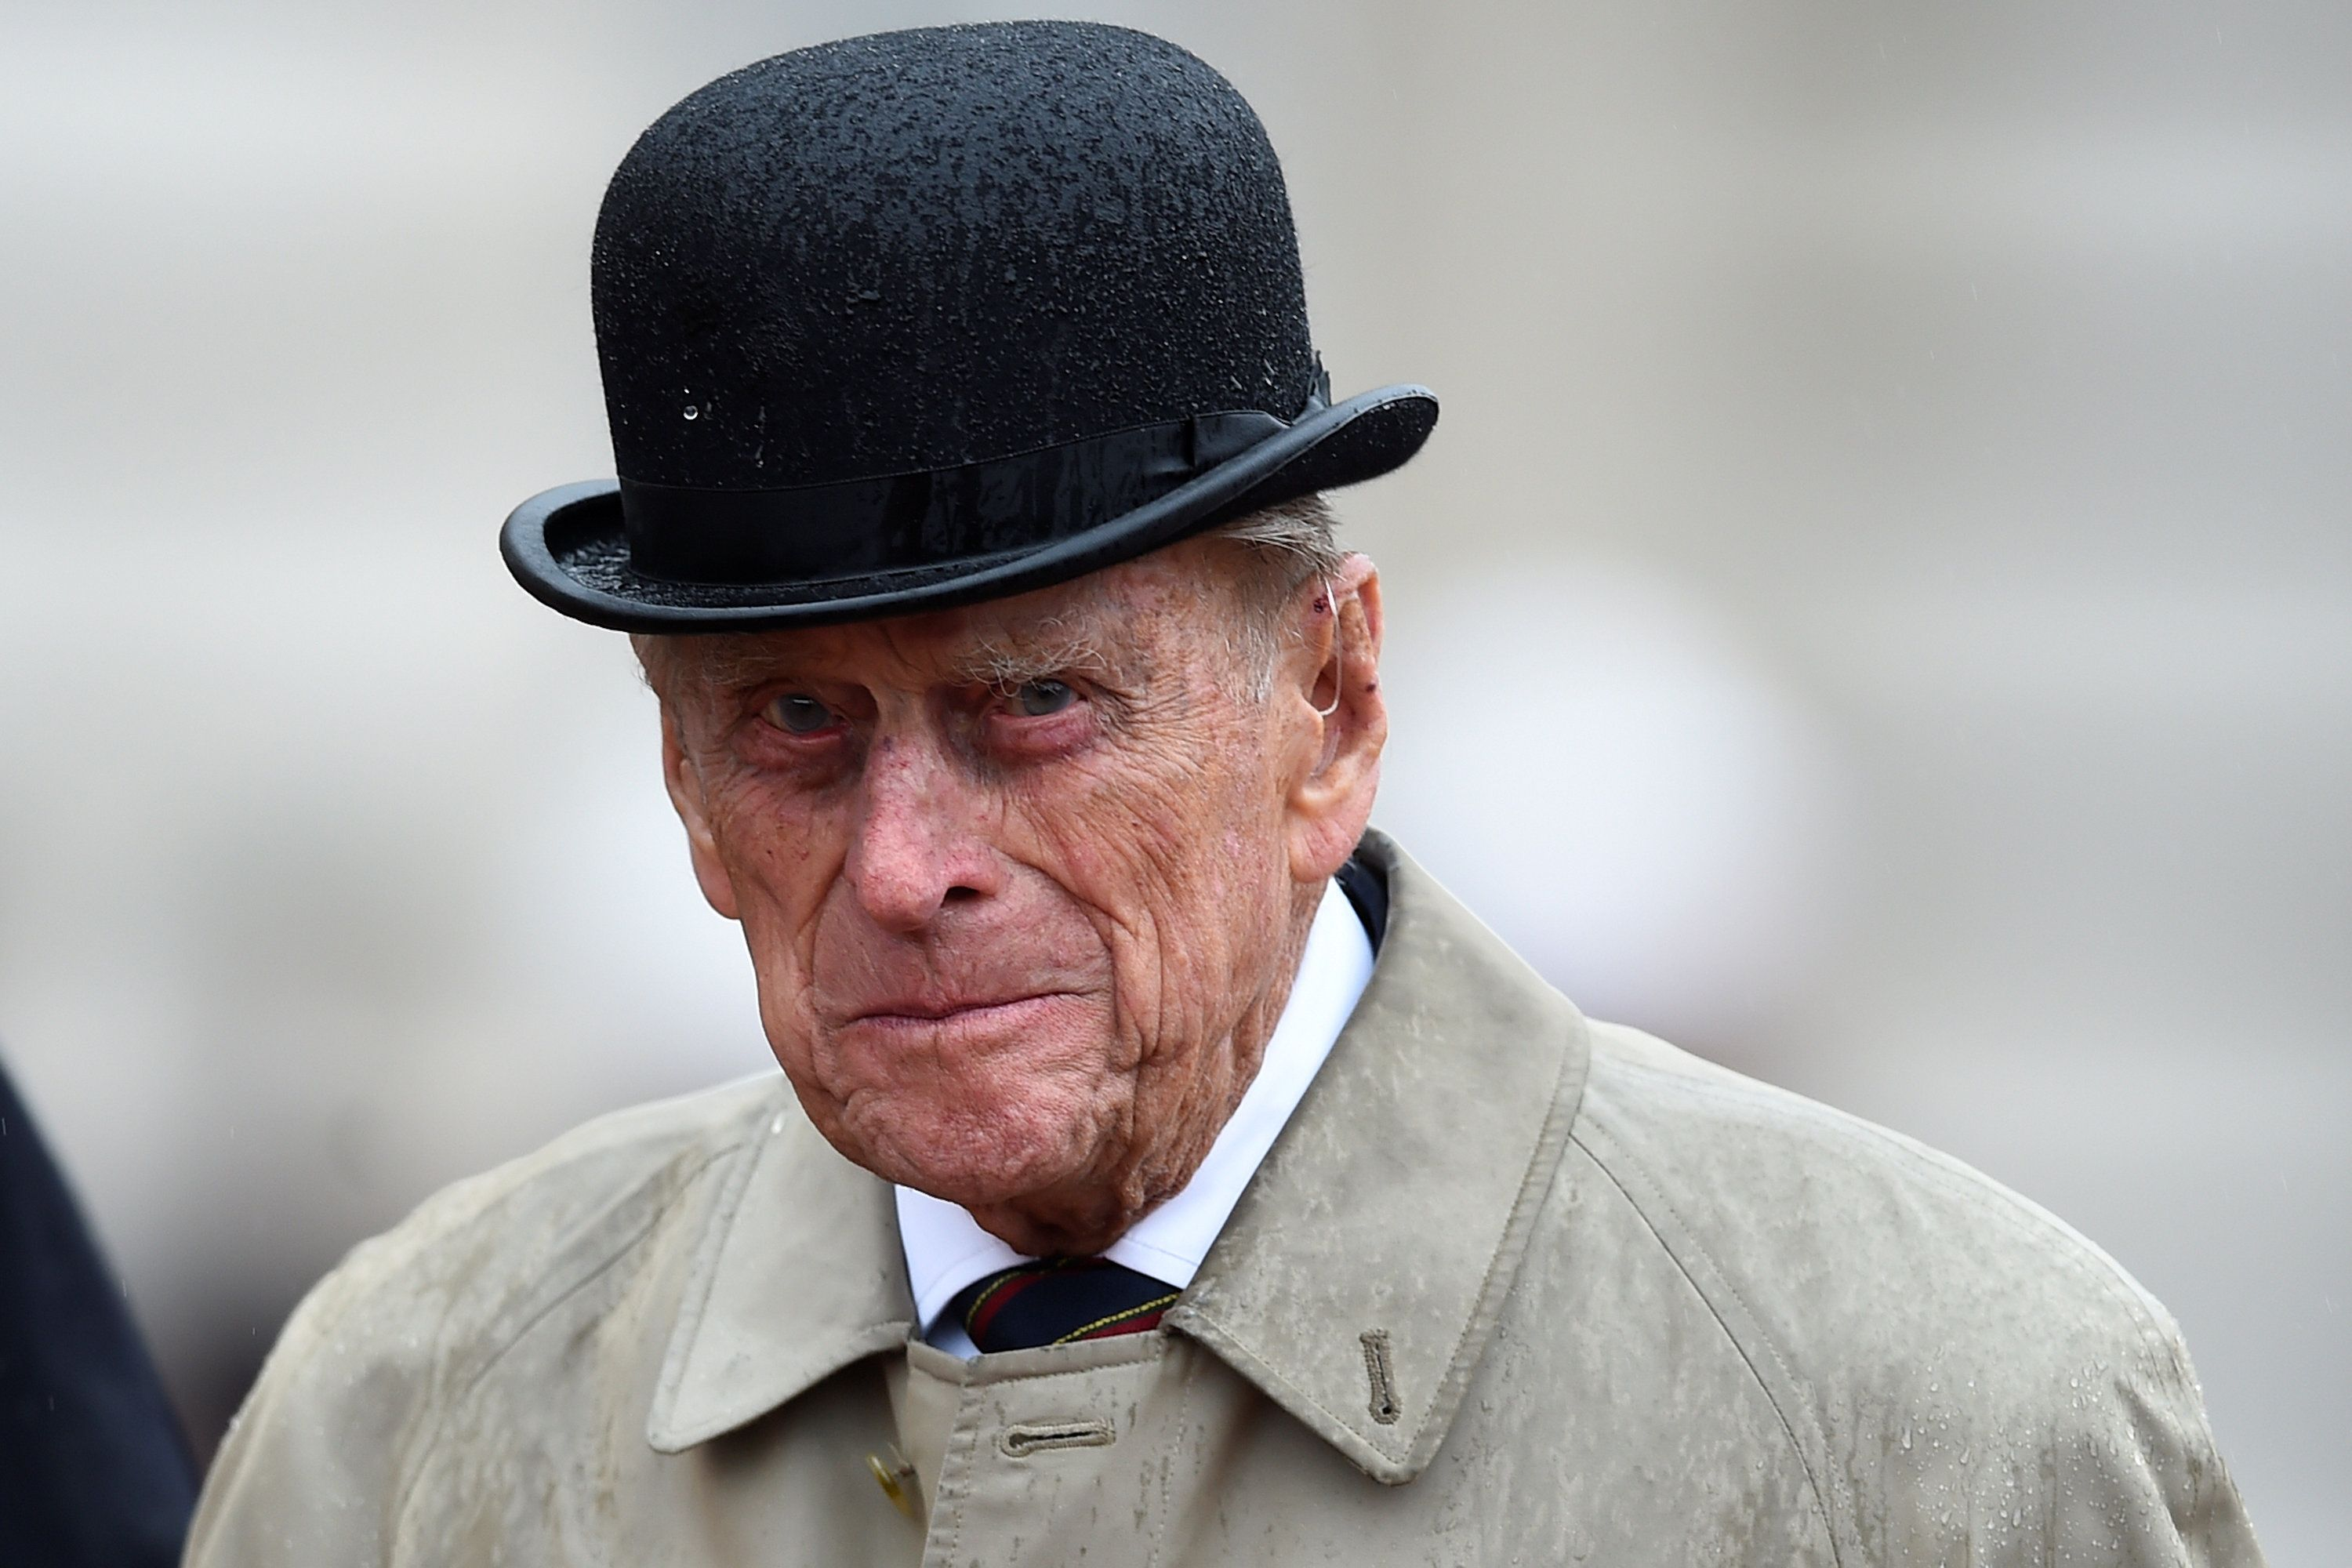 prince Philip, Duke of Edinburgh as Captain General, Royal Marines, making his final individual public engagement while attending a parade to mark the finale of the 1664 Global Challenge on the Buckingham Palace Forecourt in London, England   Photo: Getty Images